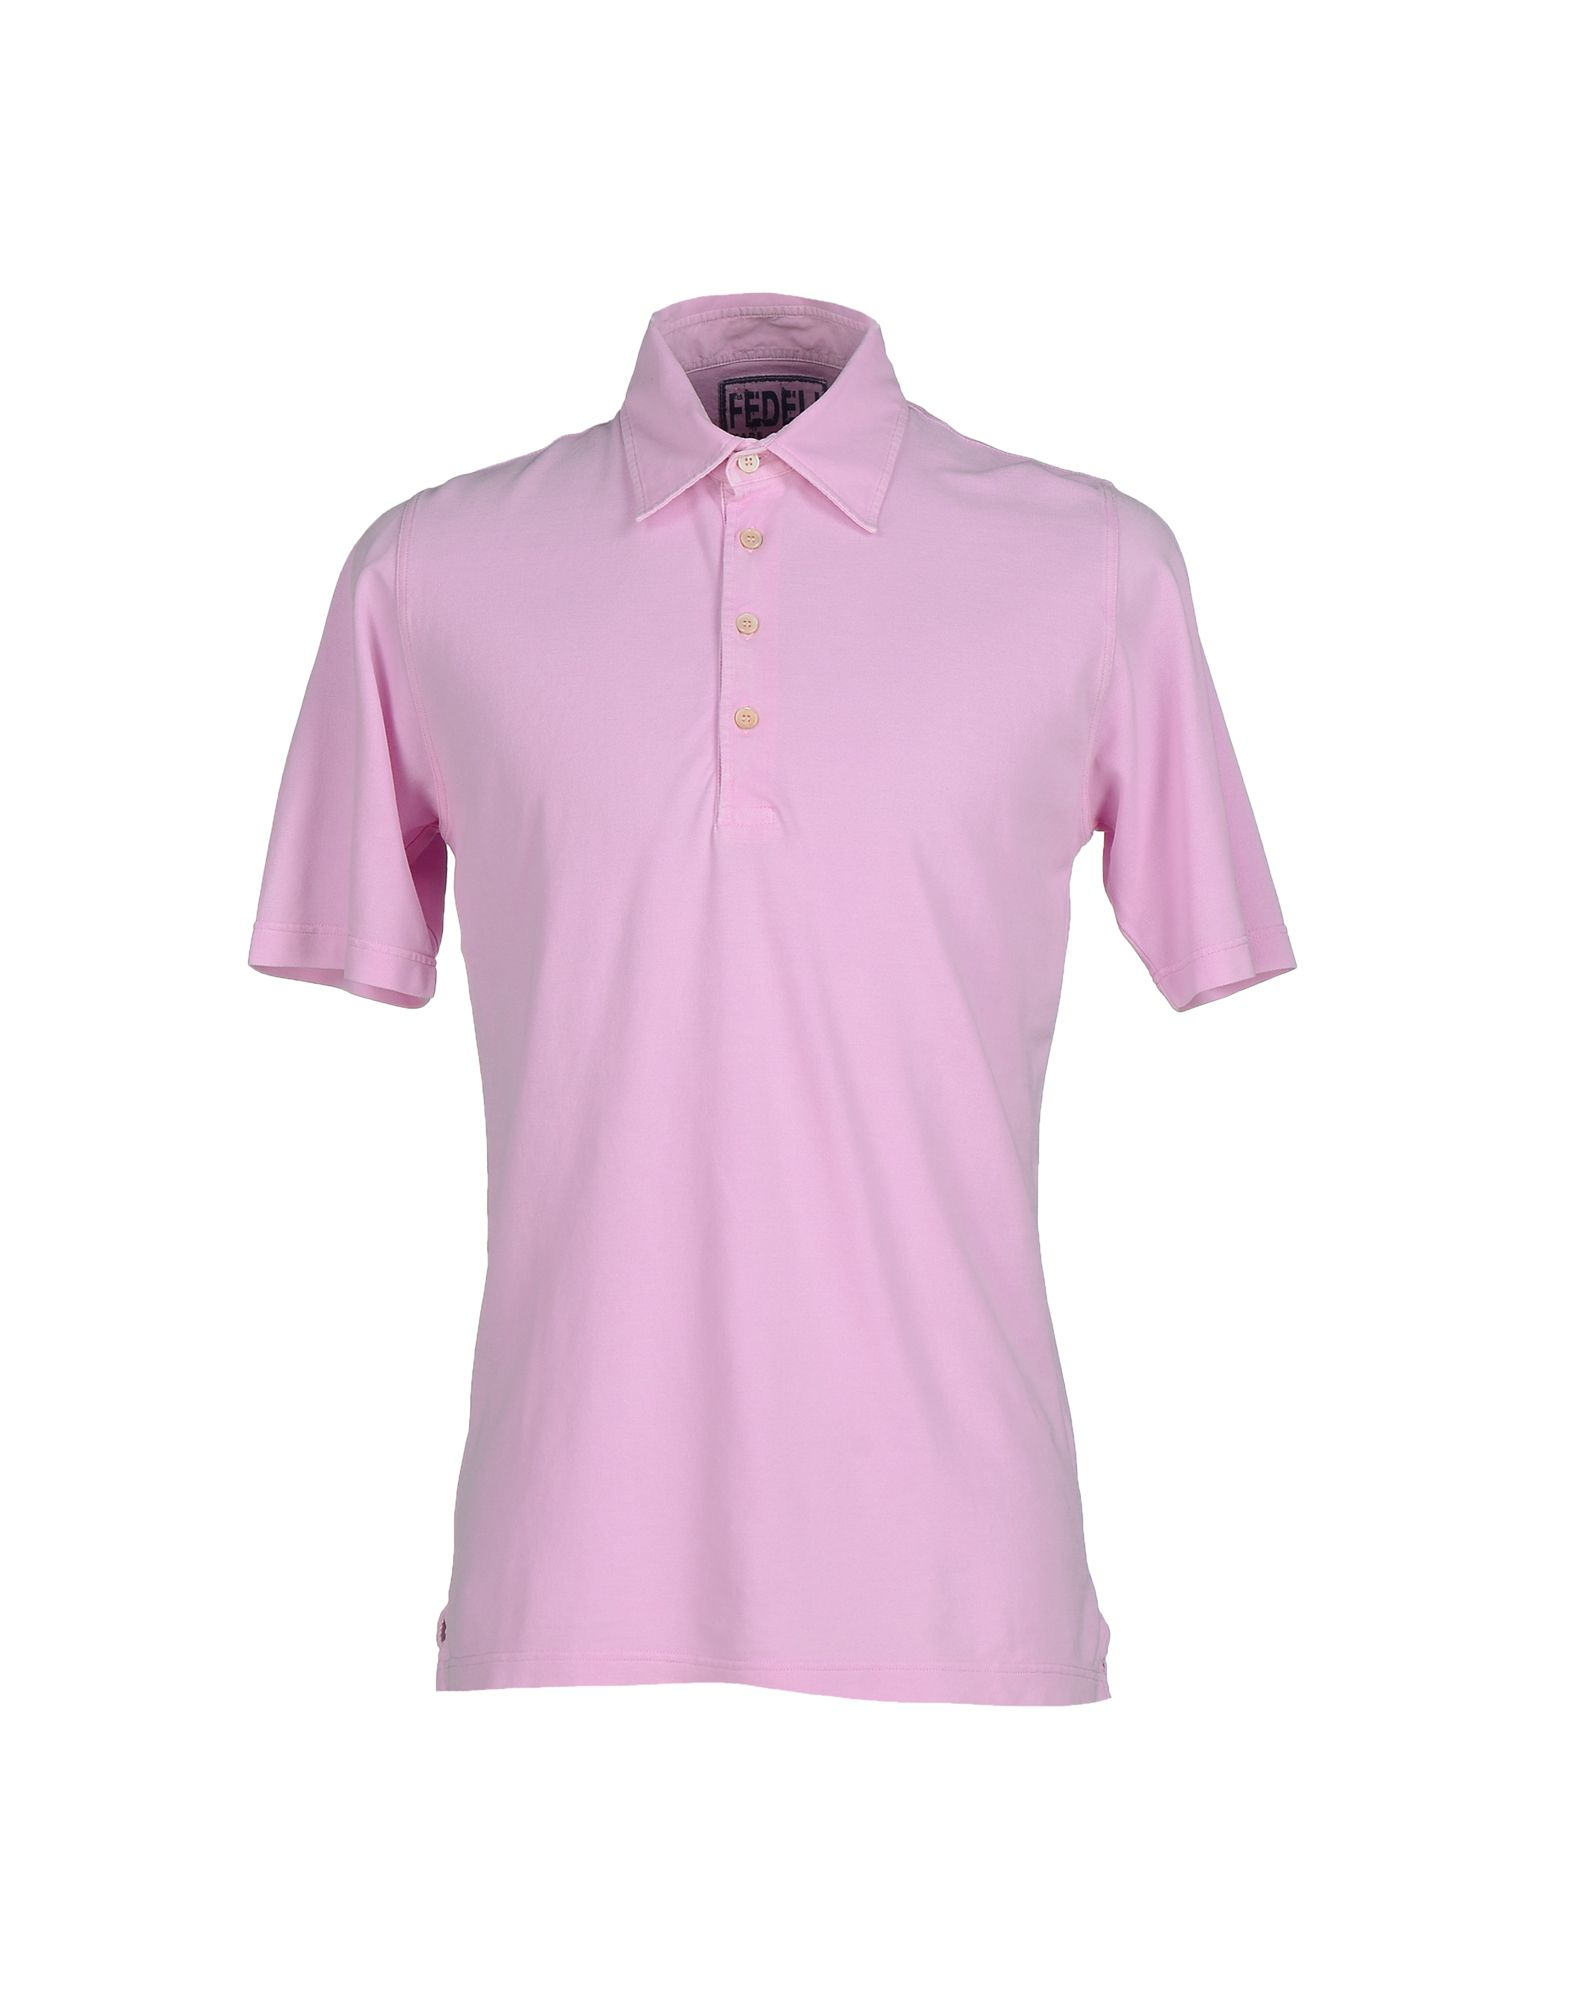 Fedeli polo shirt in purple for men light purple lyst Light purple dress shirt men